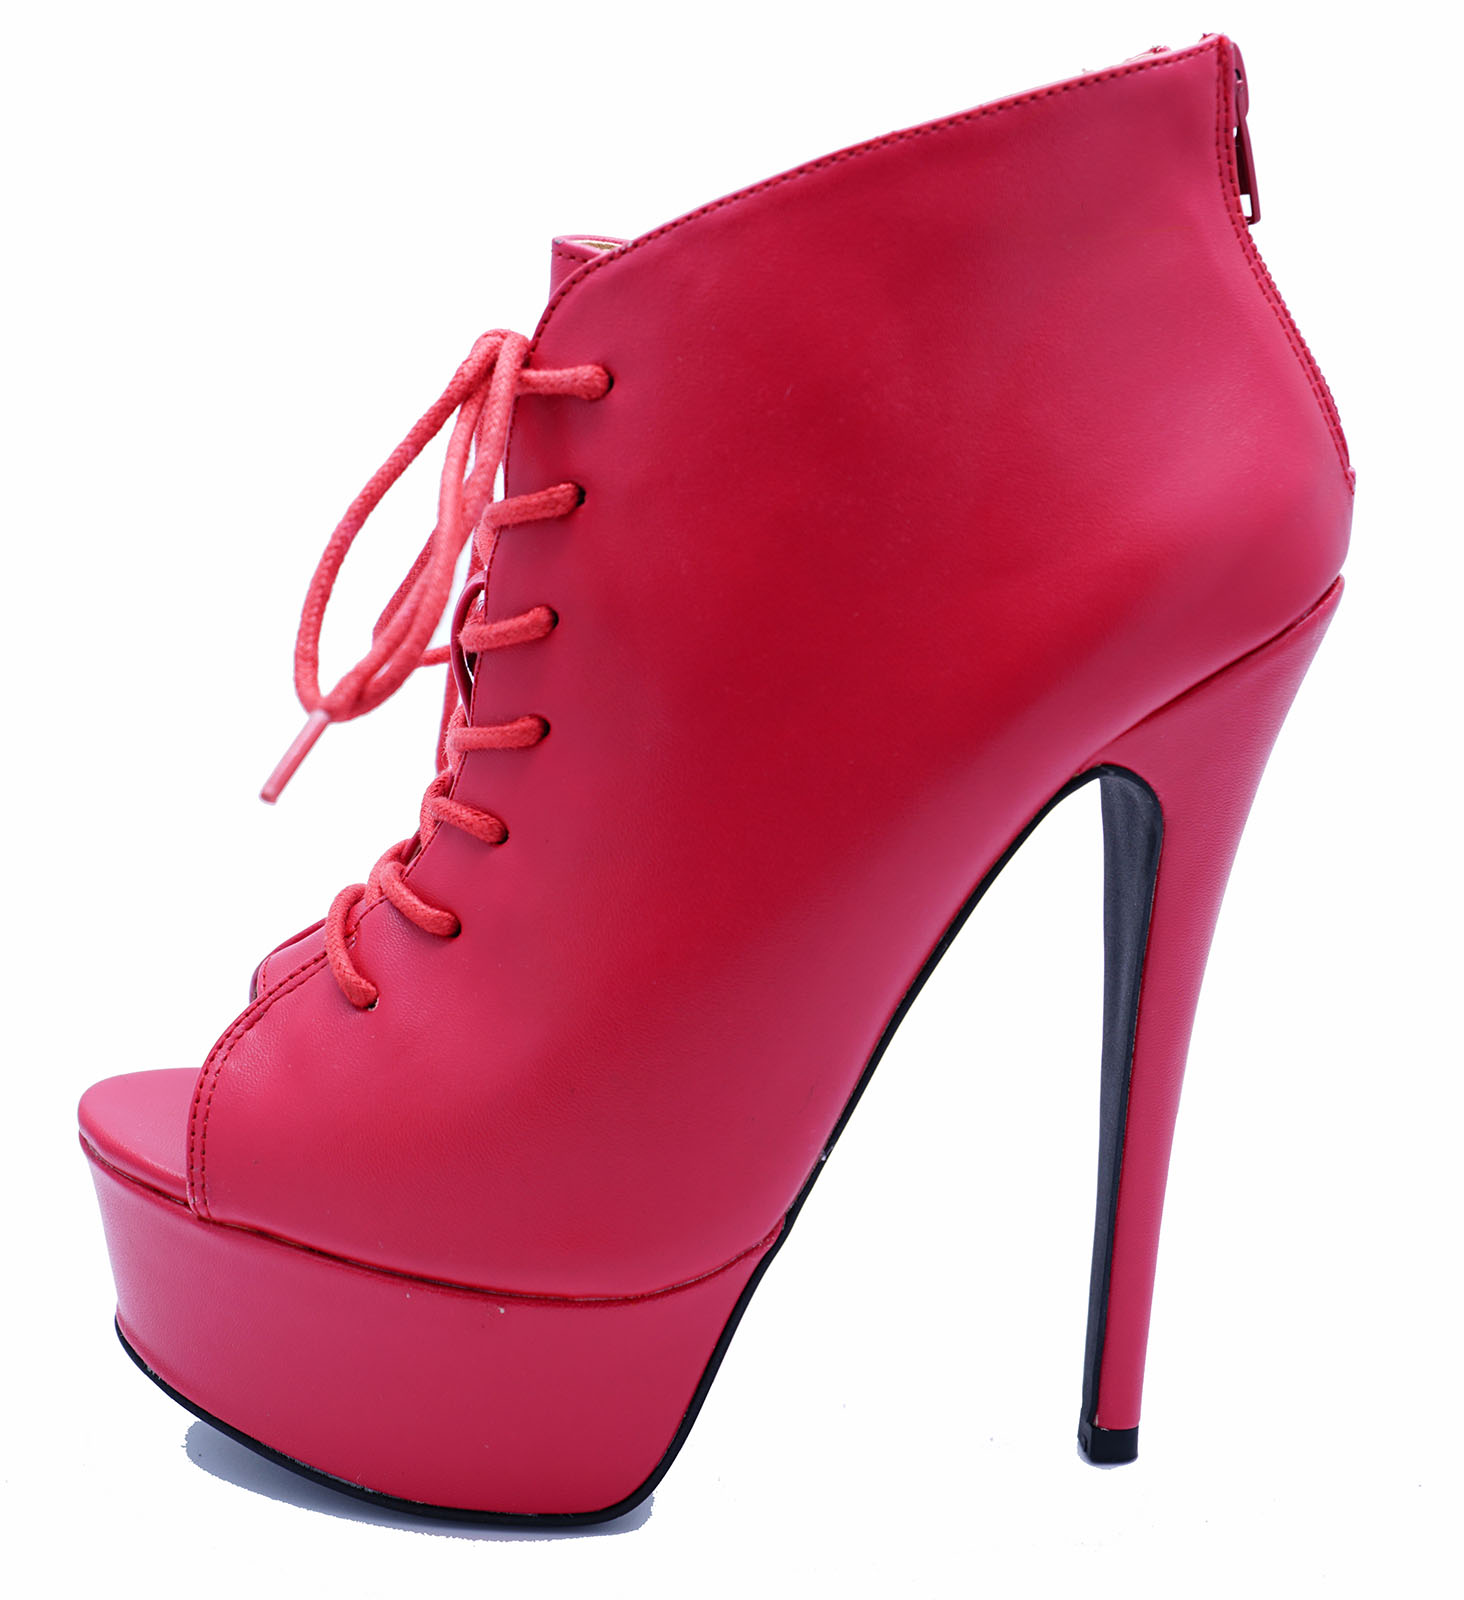 LADIES RED ZIP-UP PLATFORM PEEP-TOE LACE-UP ANKLE HIGH-HEEL BOOTS SHOES UK 3-9